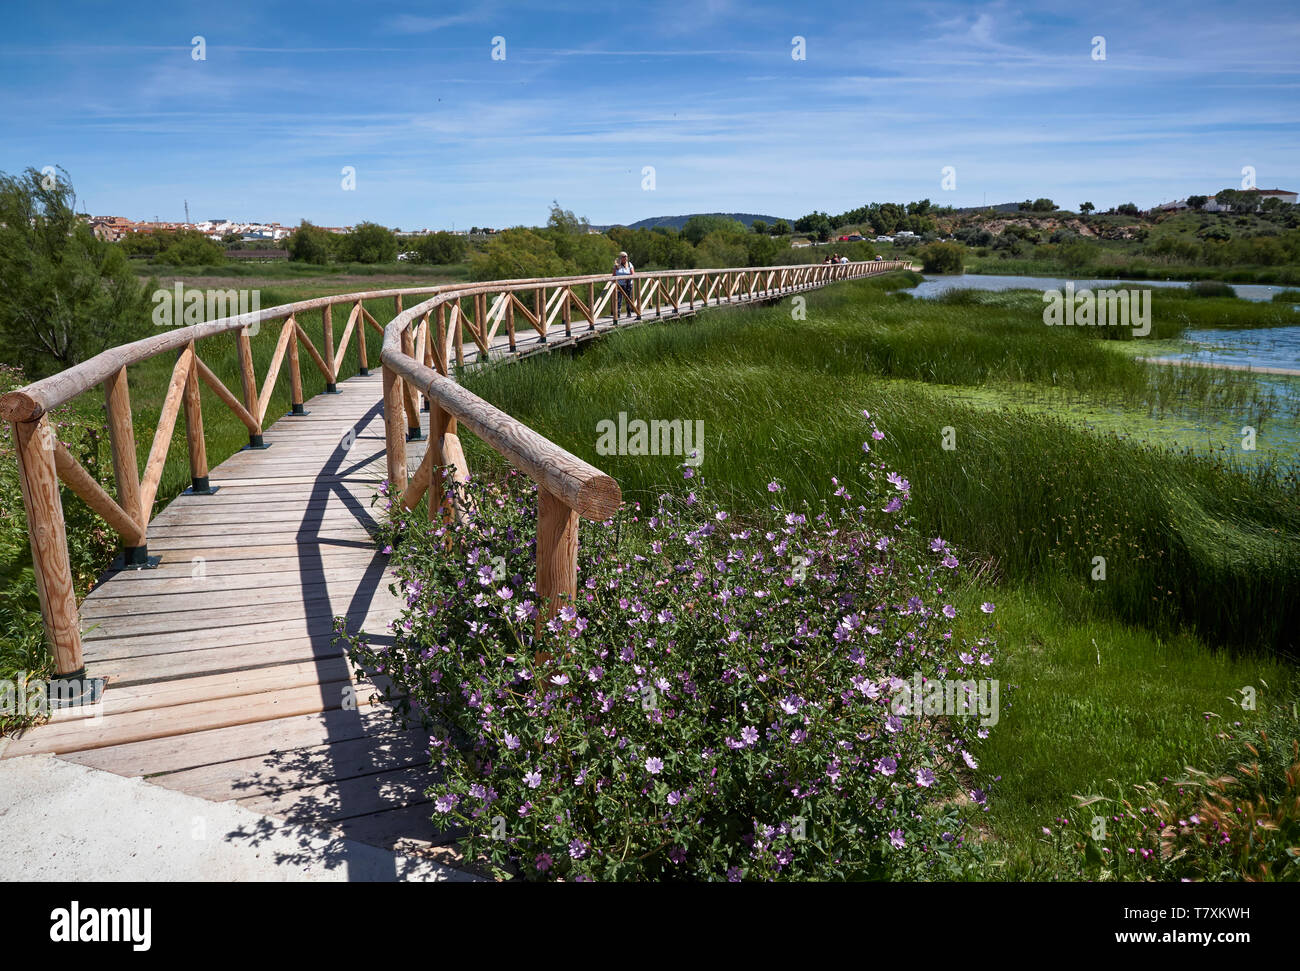 The curving wooden walkway with people on it over the Lagoon at Fuente de Piedra, with Grasses blowing in the wind and purple Wildflowers. Spain. Stock Photo